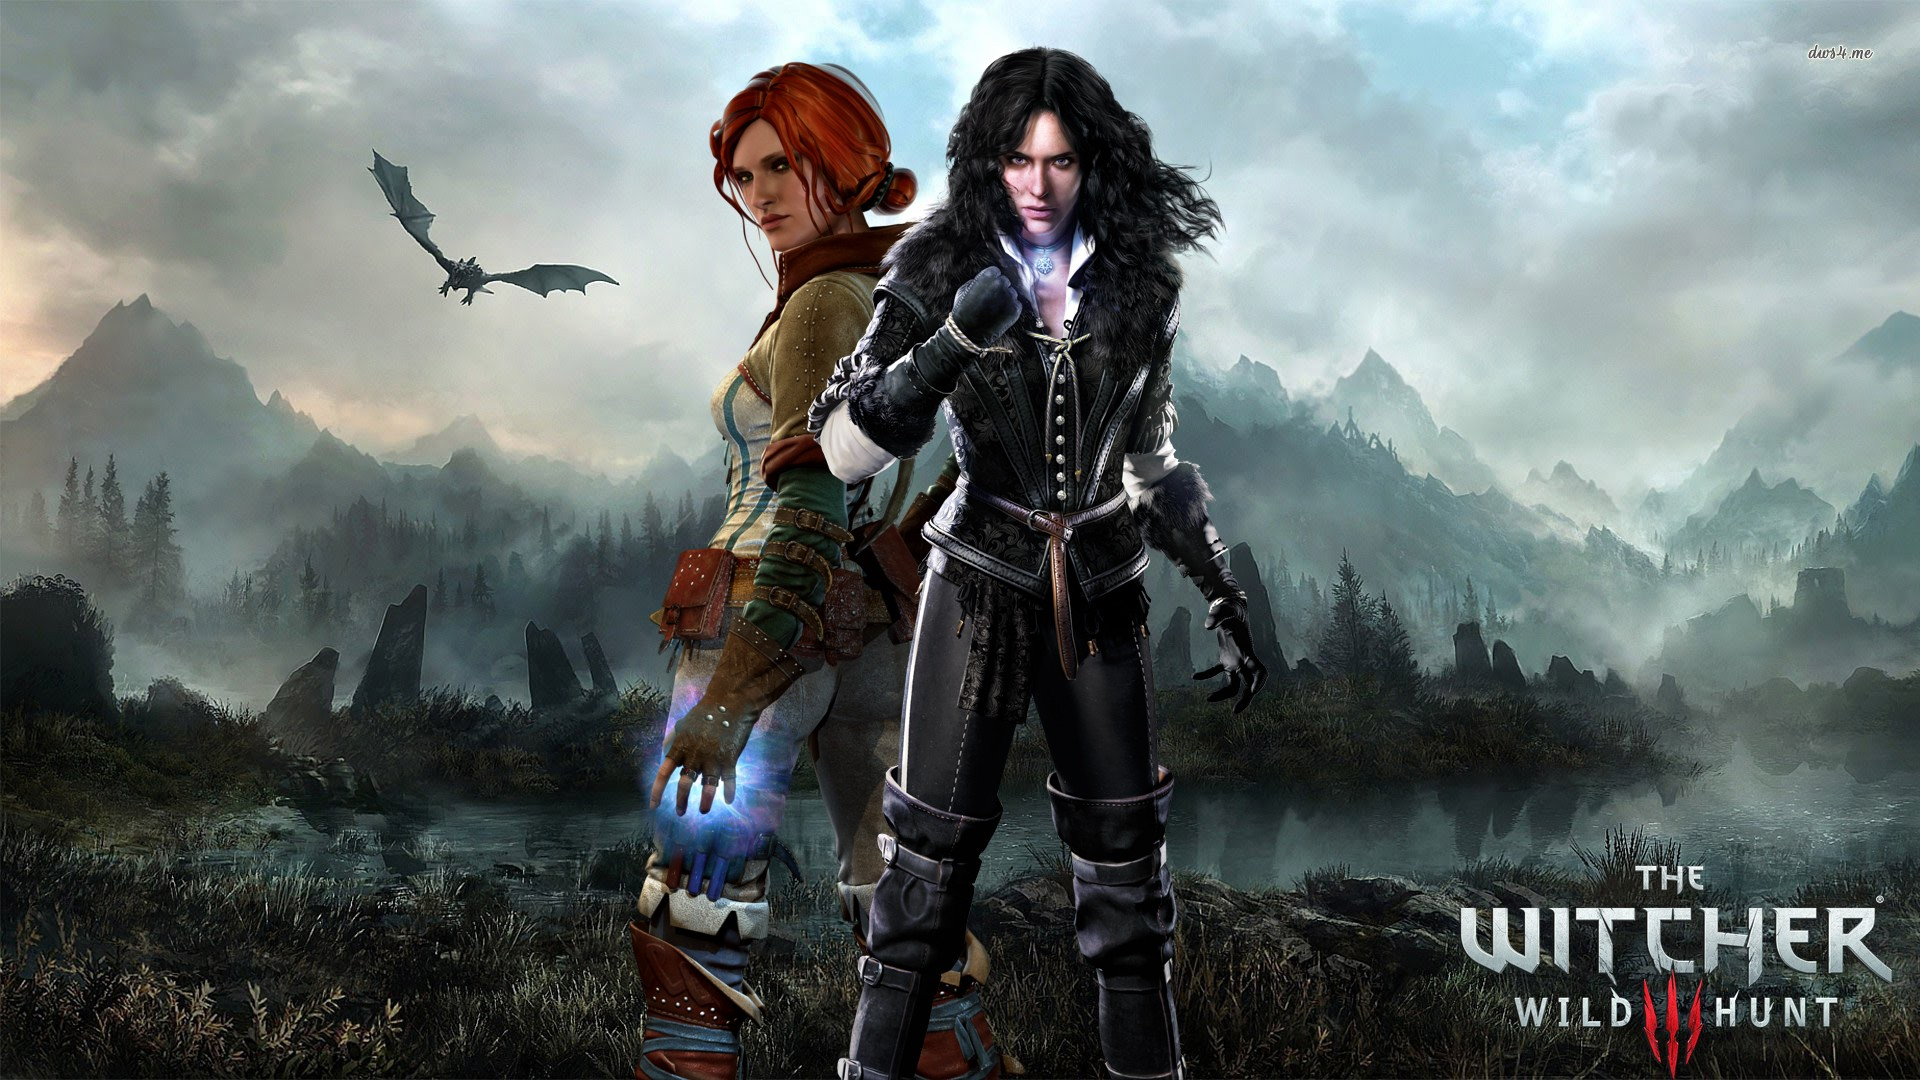 The Witcher Witcher 3 Wallpaper Hd Triss 1289070 Hd